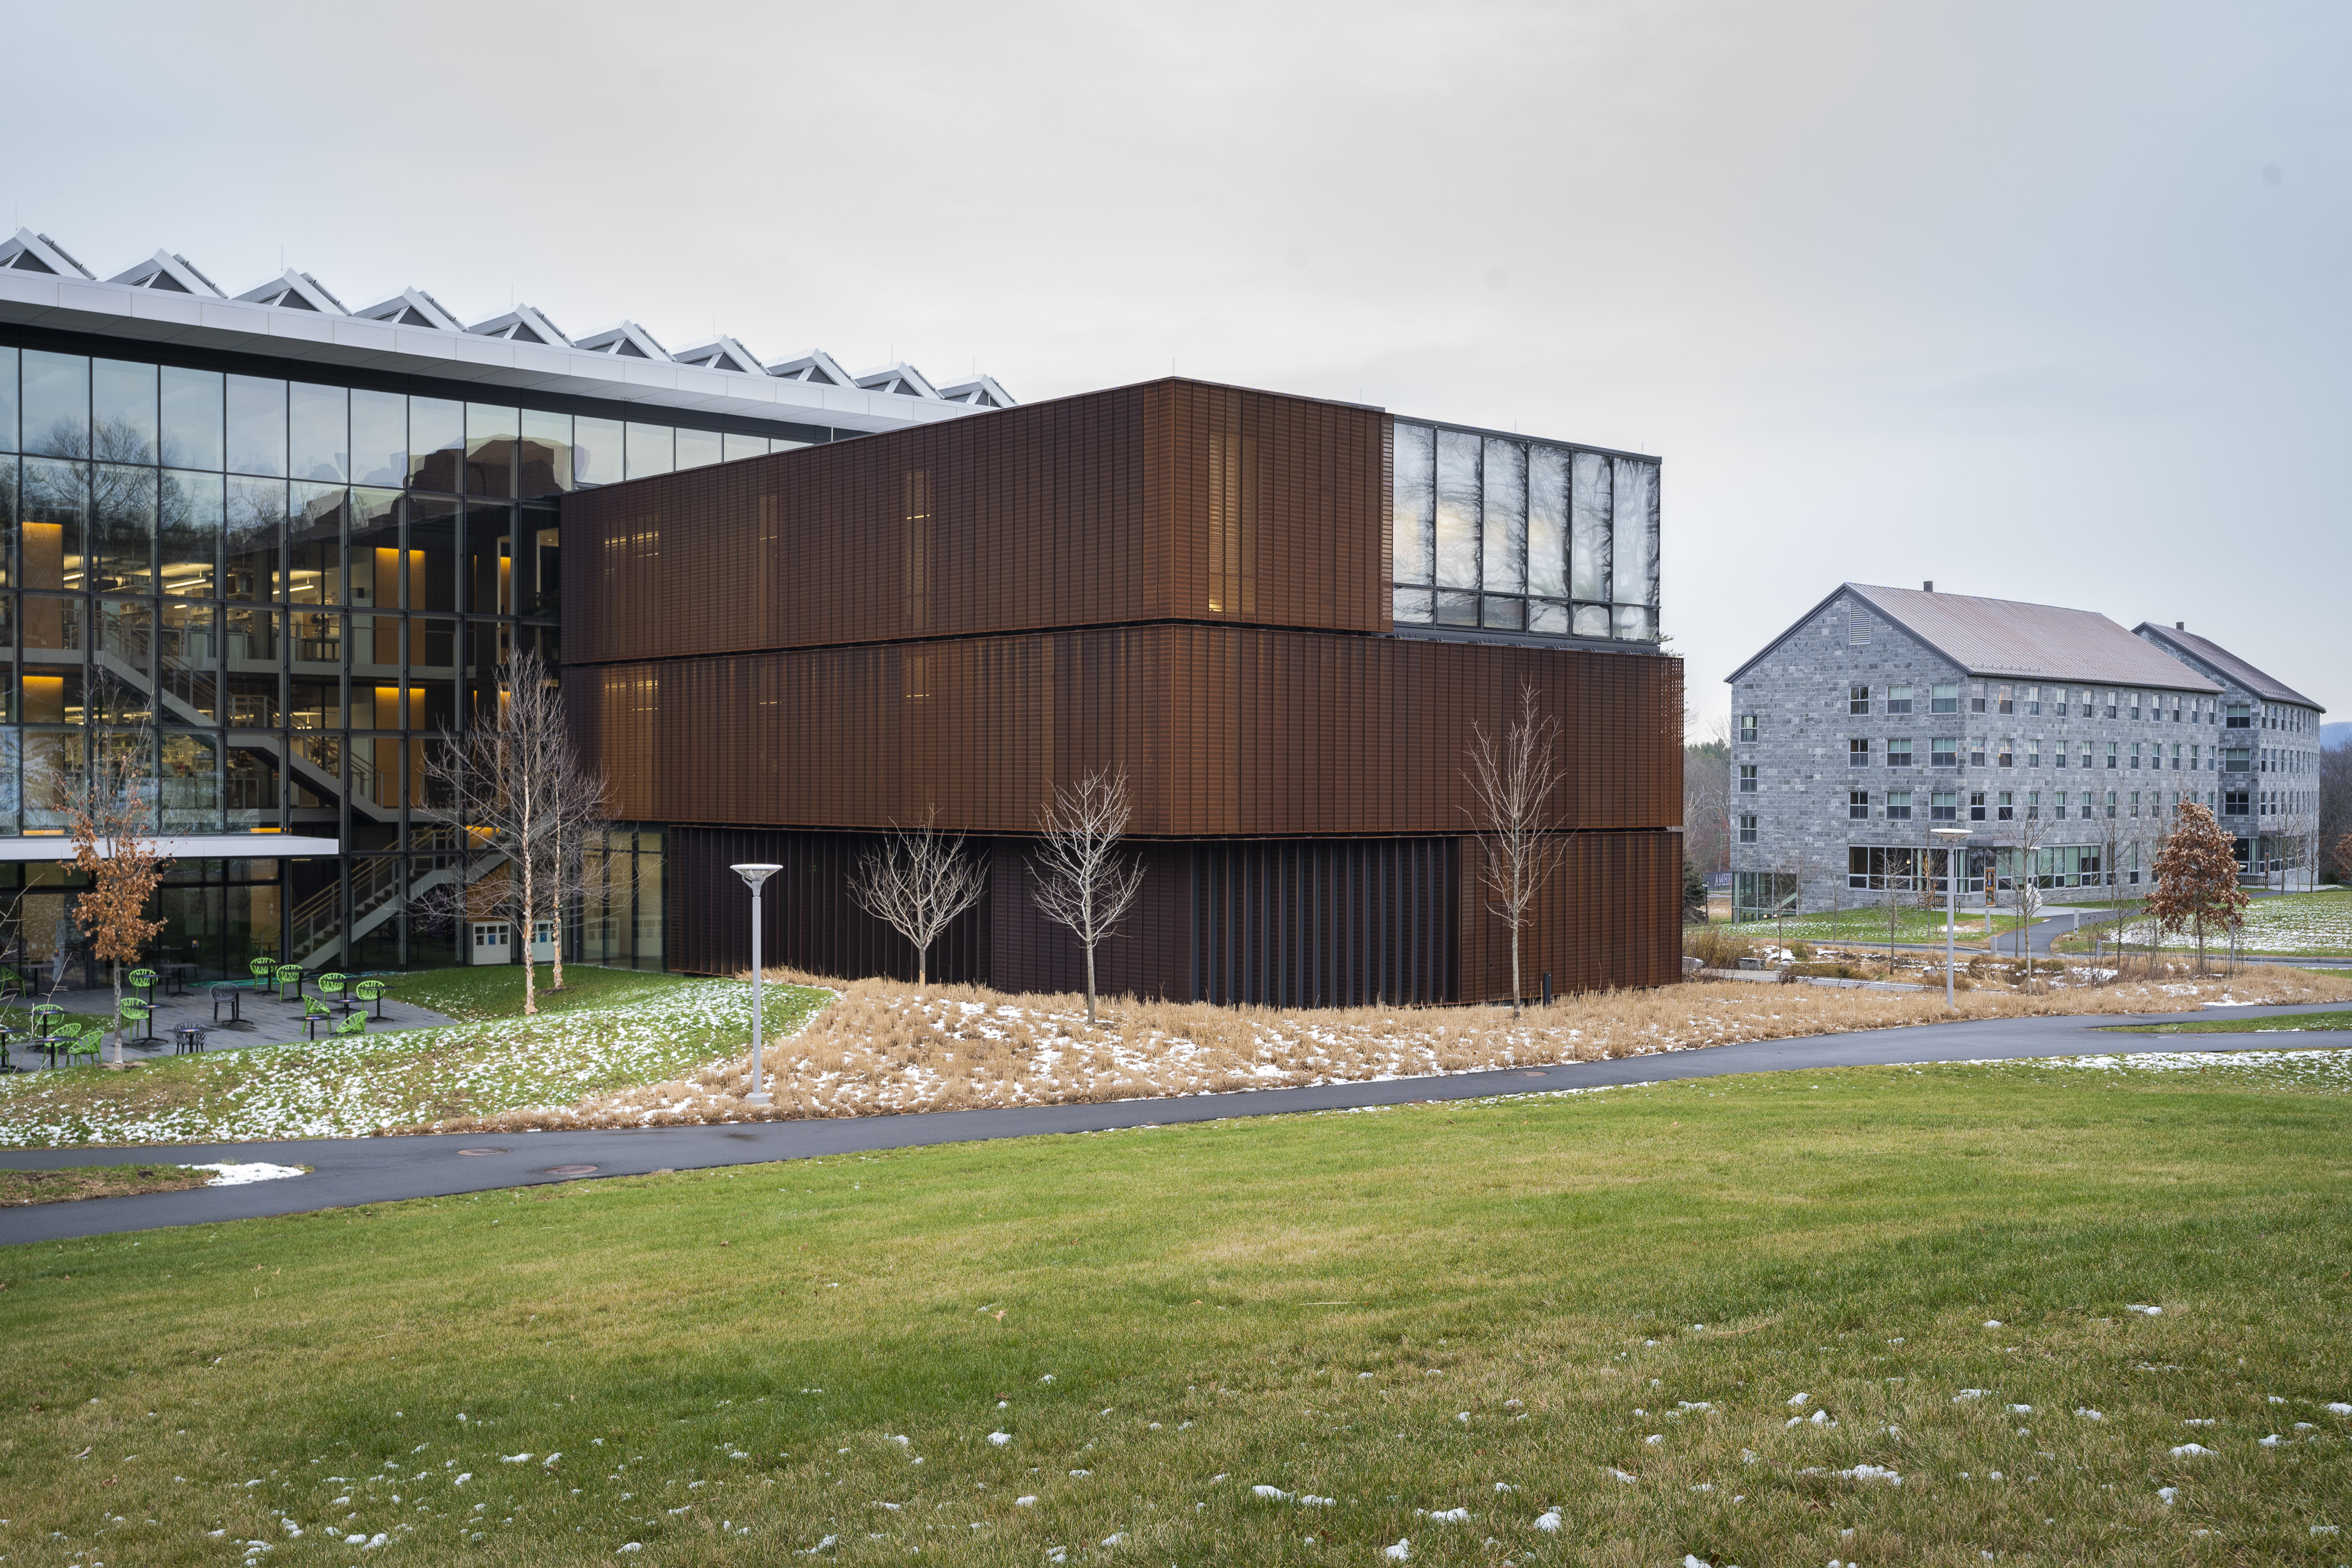 Amherst College's new Science Center building opened in the fall of 2018